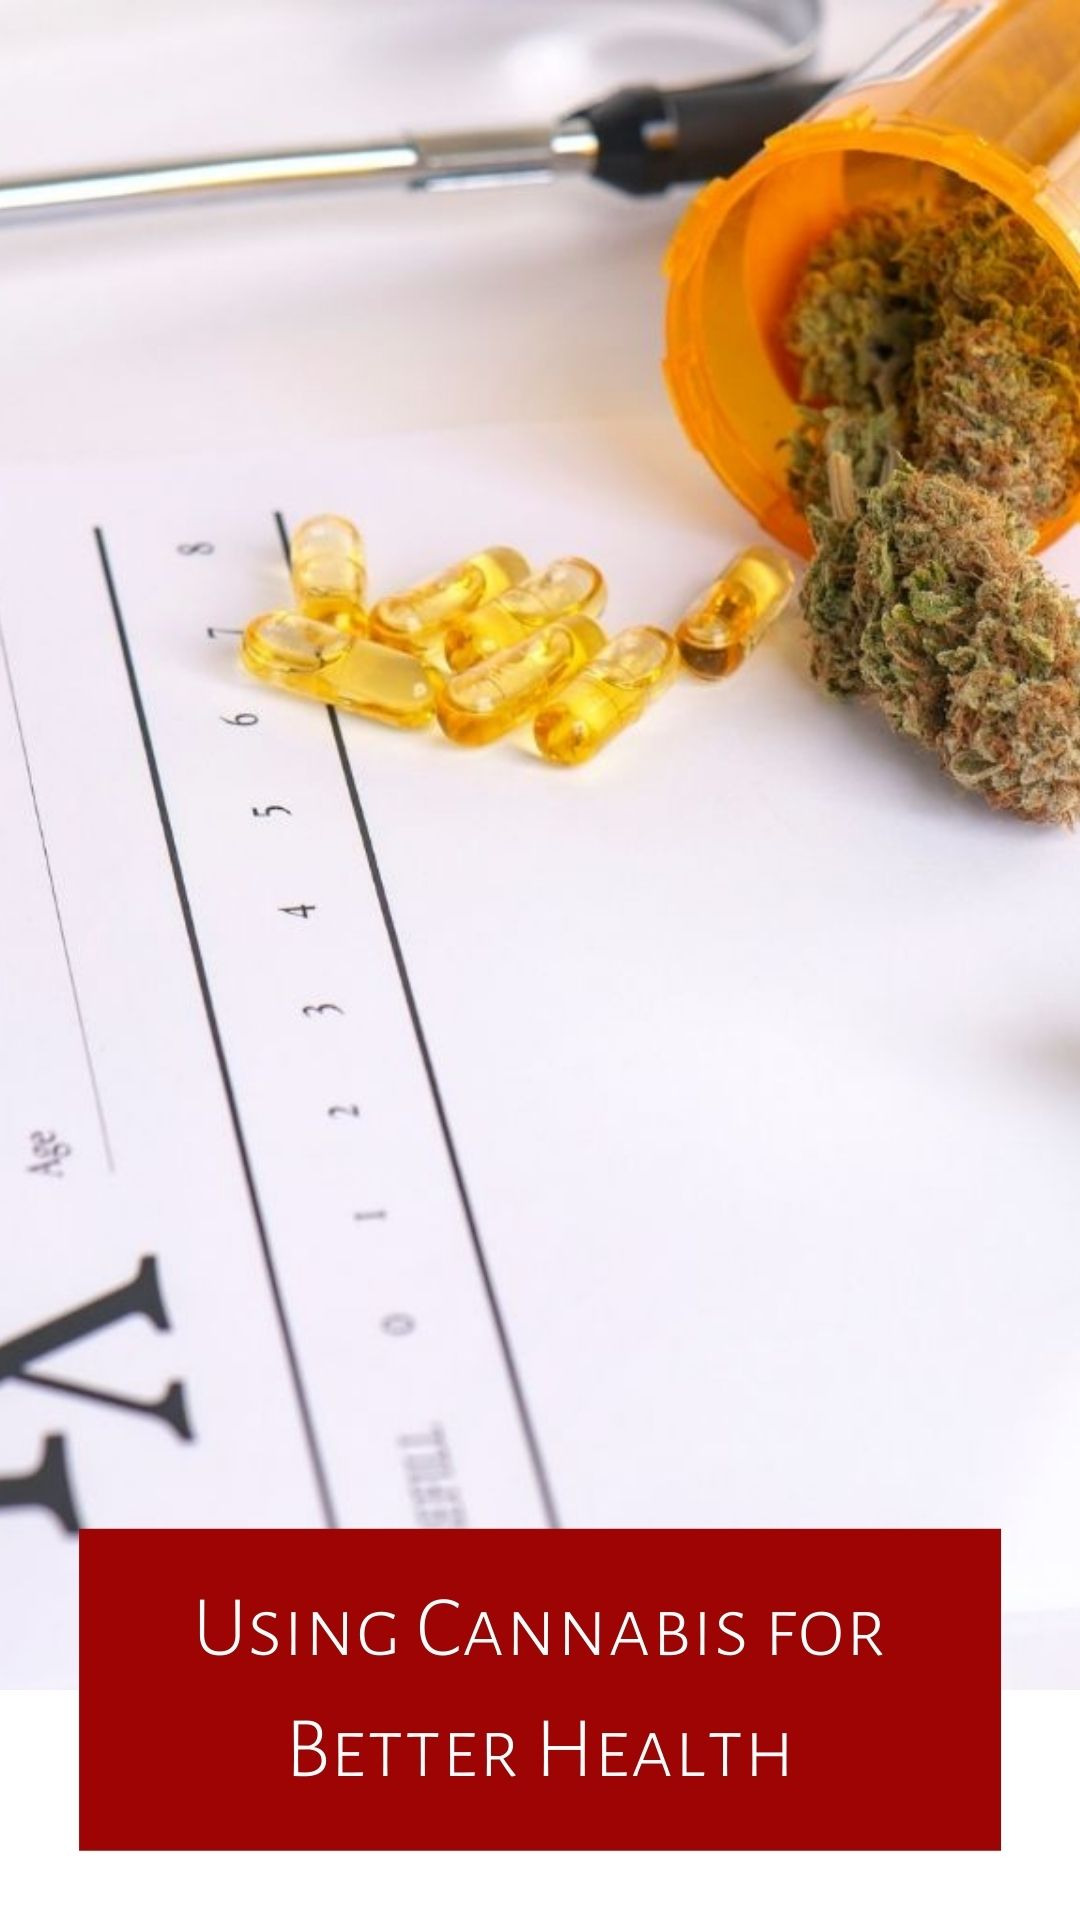 Using Cannabis for Better Health